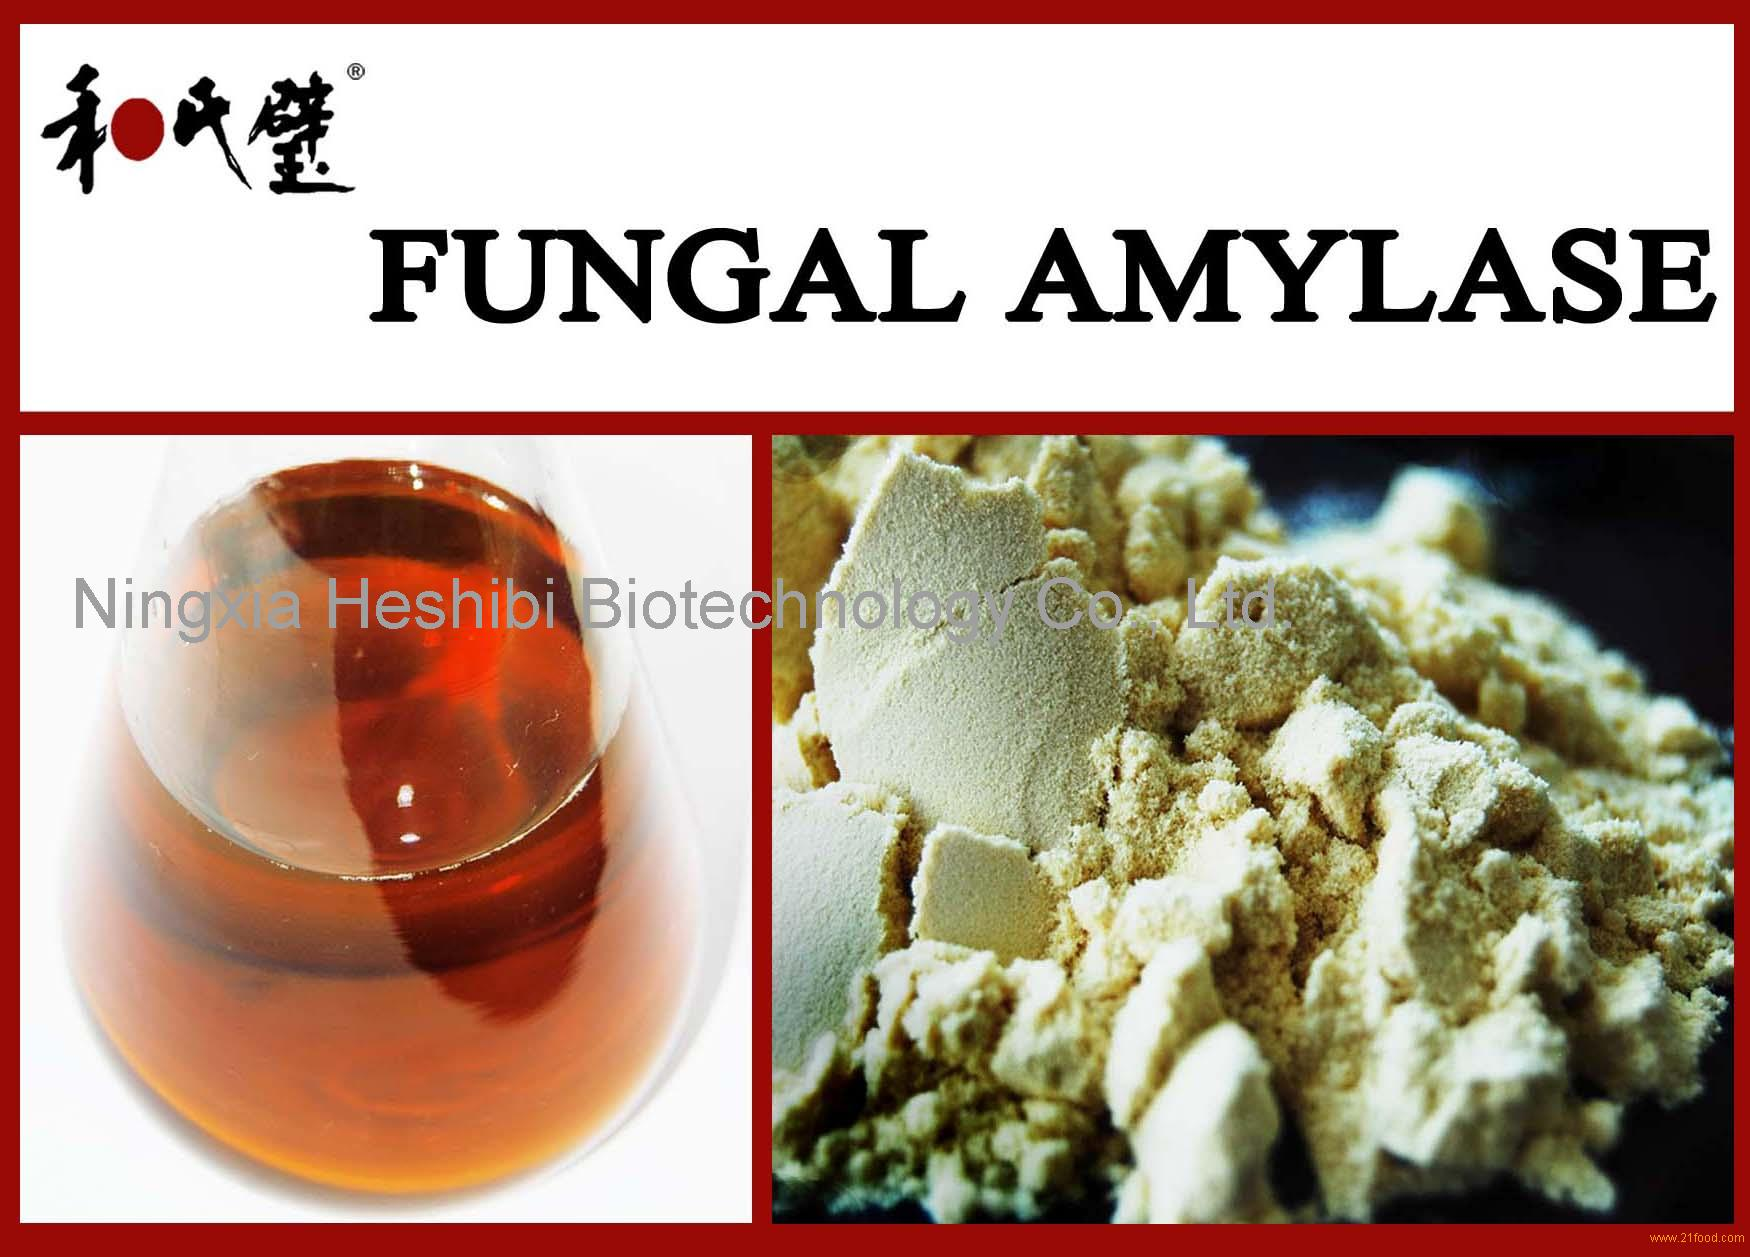 fungal amylase The present review was focused on fungal amylase and this review assesses the following topics: classification of amylase, fungal amylase, biochemical properties of amylases, fermentation studies on fungal amylase production and uses of amylases.